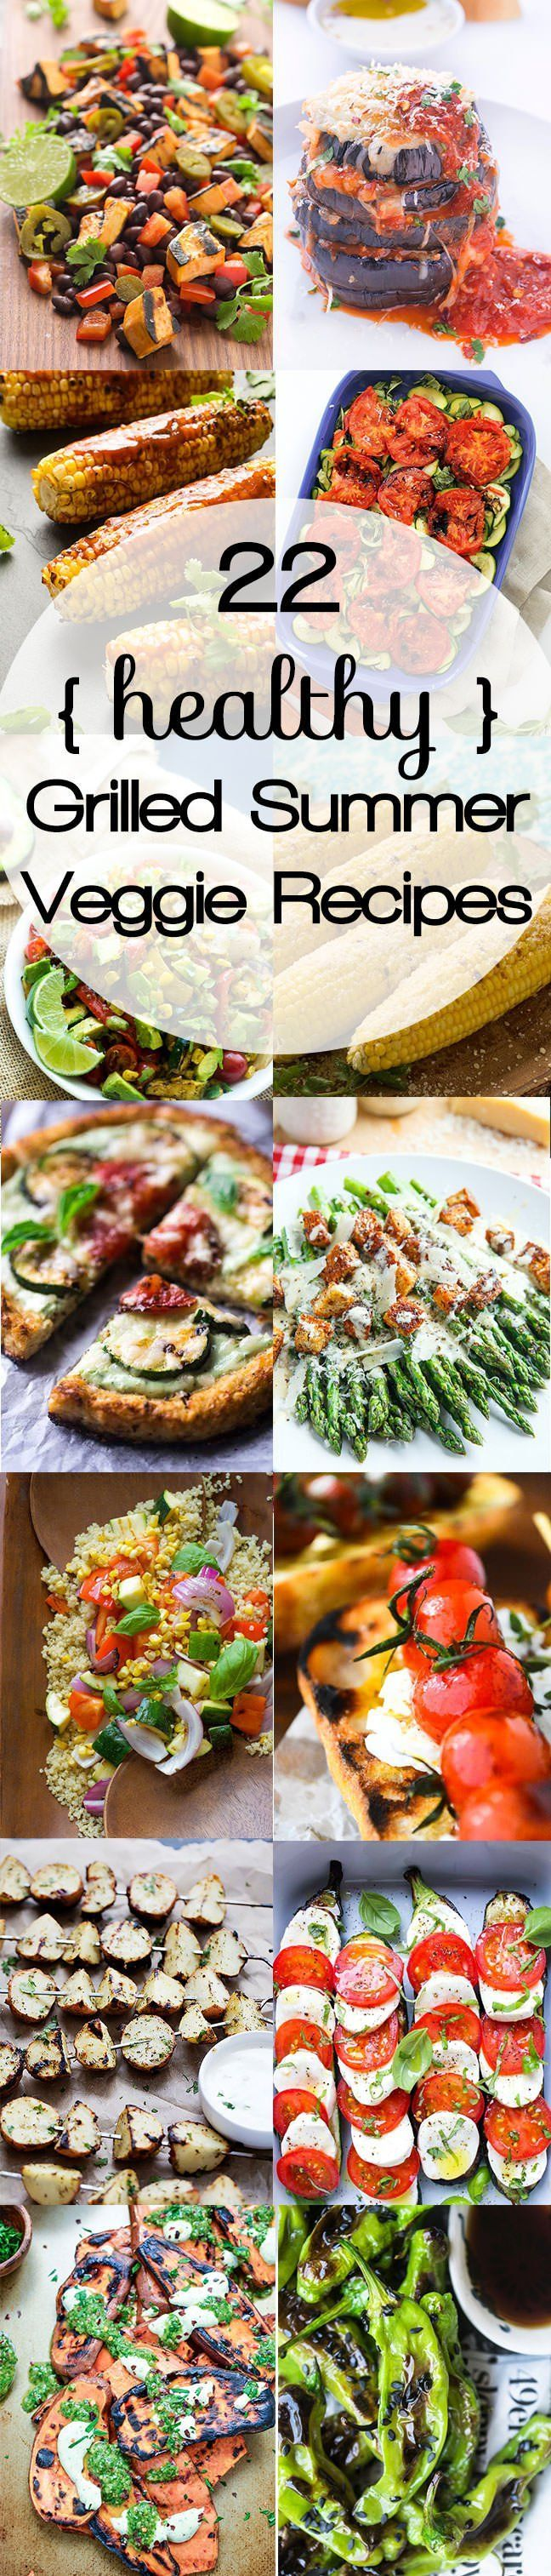 Take the entire dinner outside with these fired up side dishes! Everything from grilled potatoes, salads and even eggplant parmesan! So skip that oven and head to the grill!